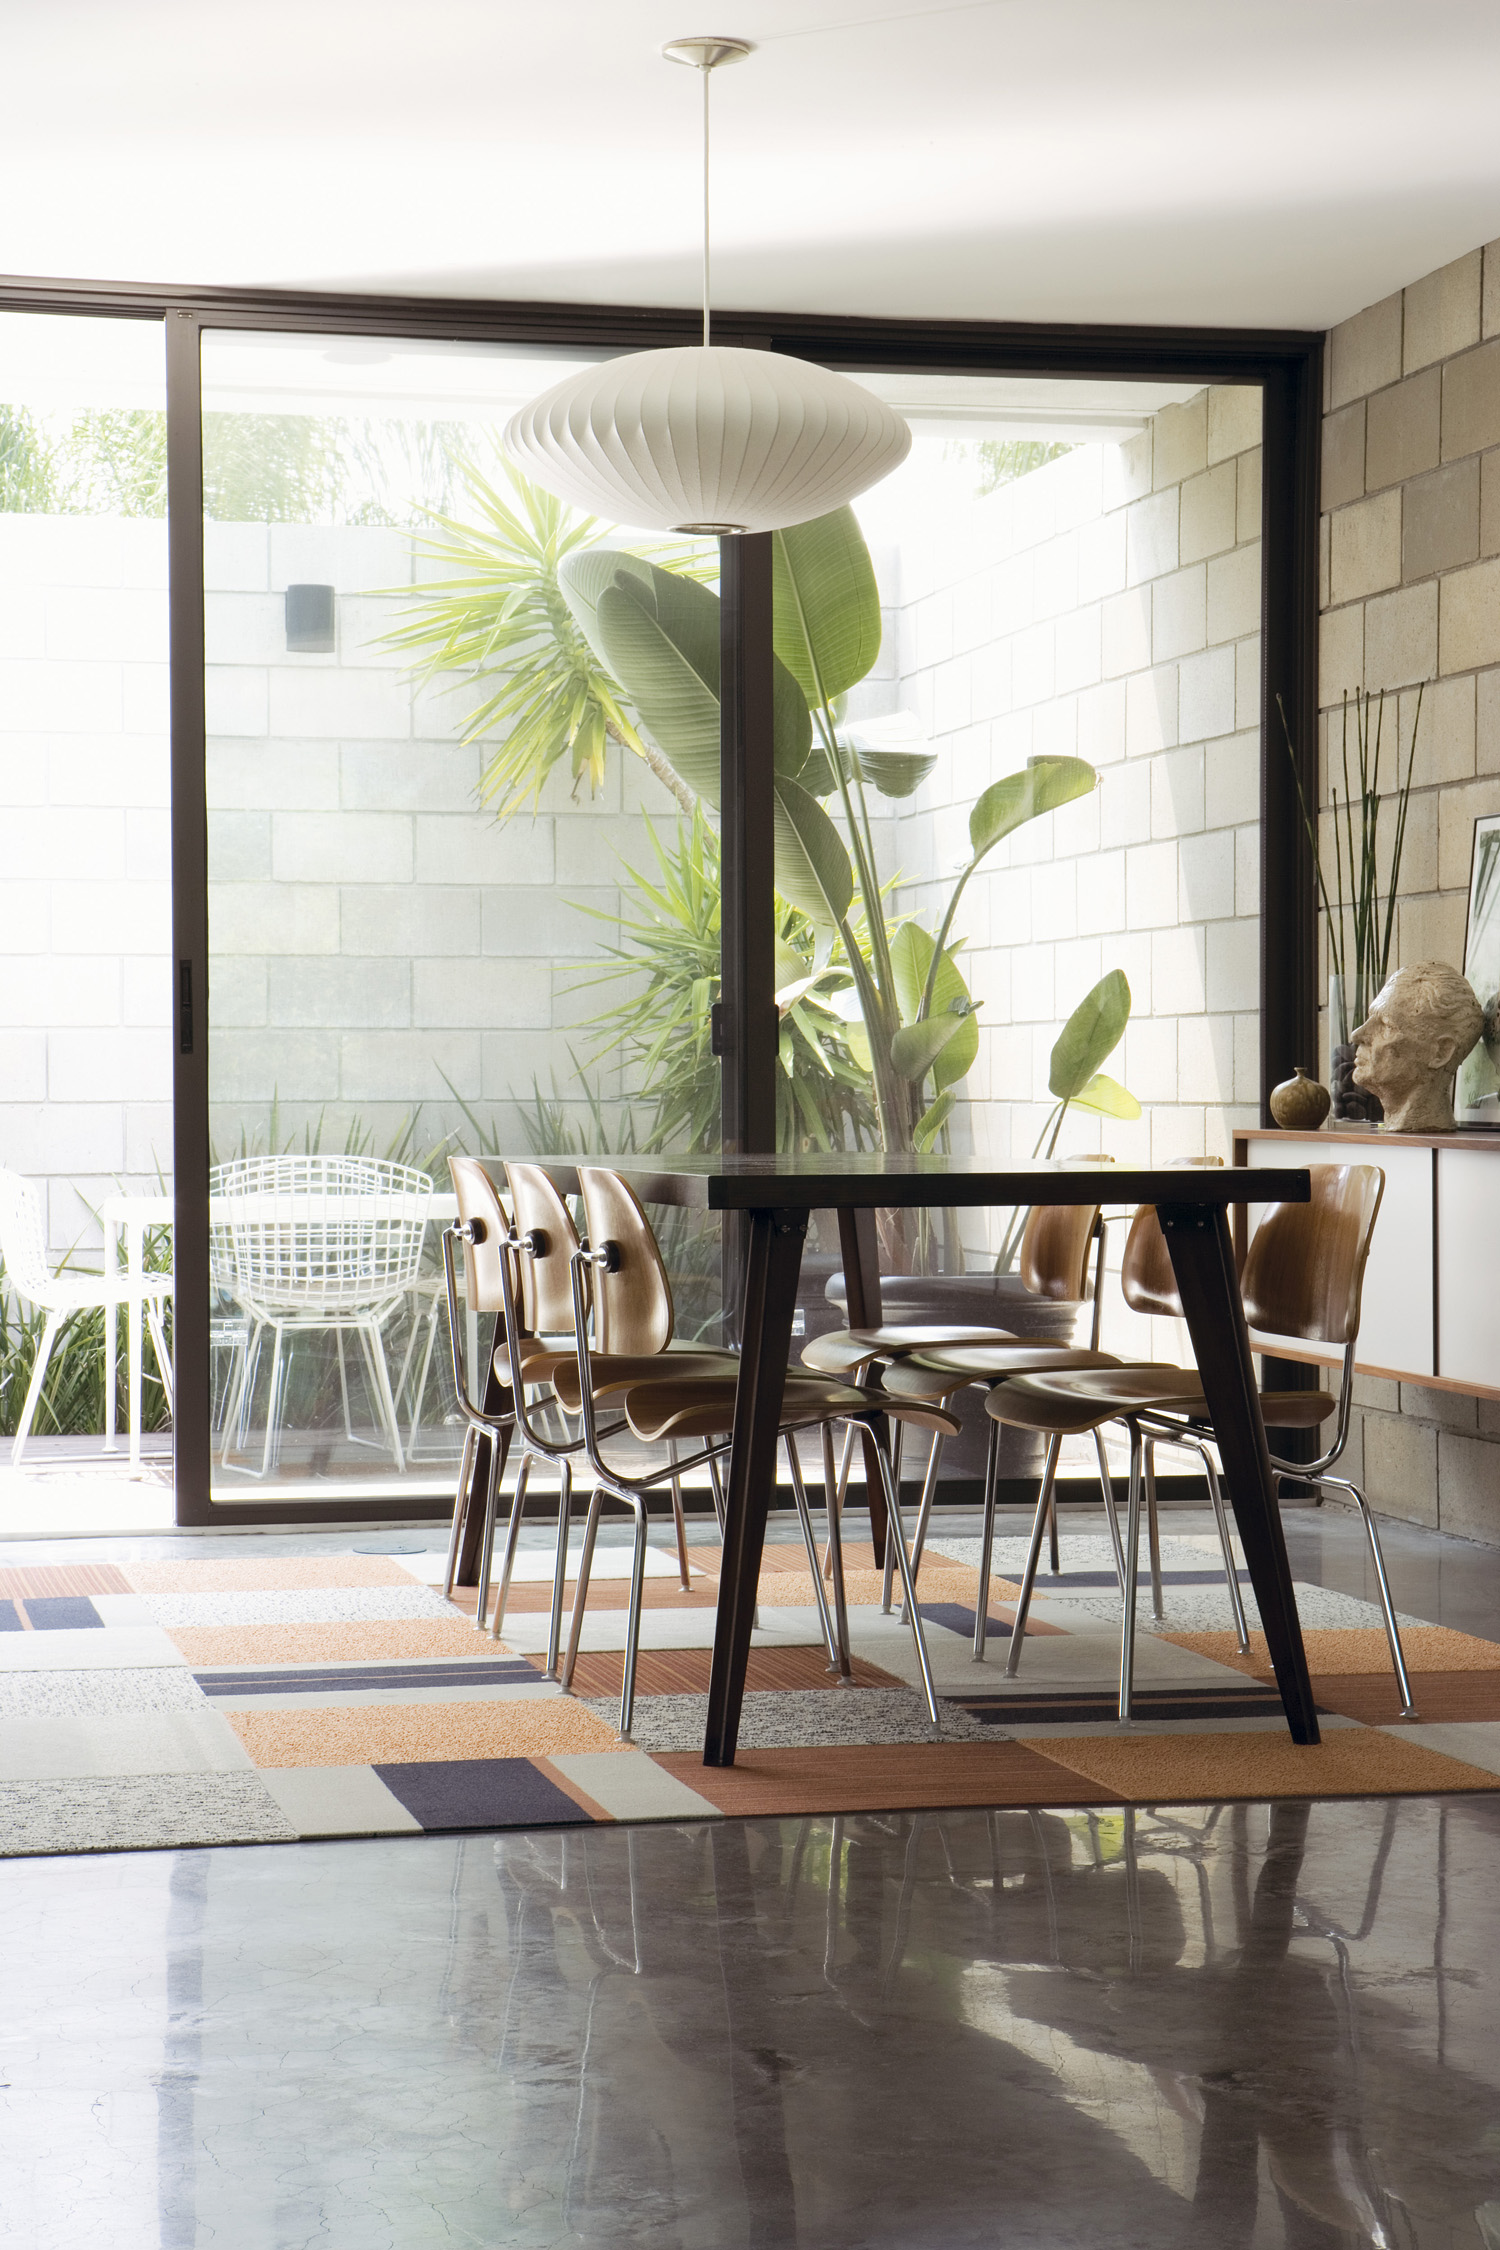 Inside out: The dining room opens out to a courtyard used for alfresco meals. Vintage Eames dining chairs and a George Nelson 'Bubble' lamp complement a table Brunson made from secondhand legs and a new plank of wood